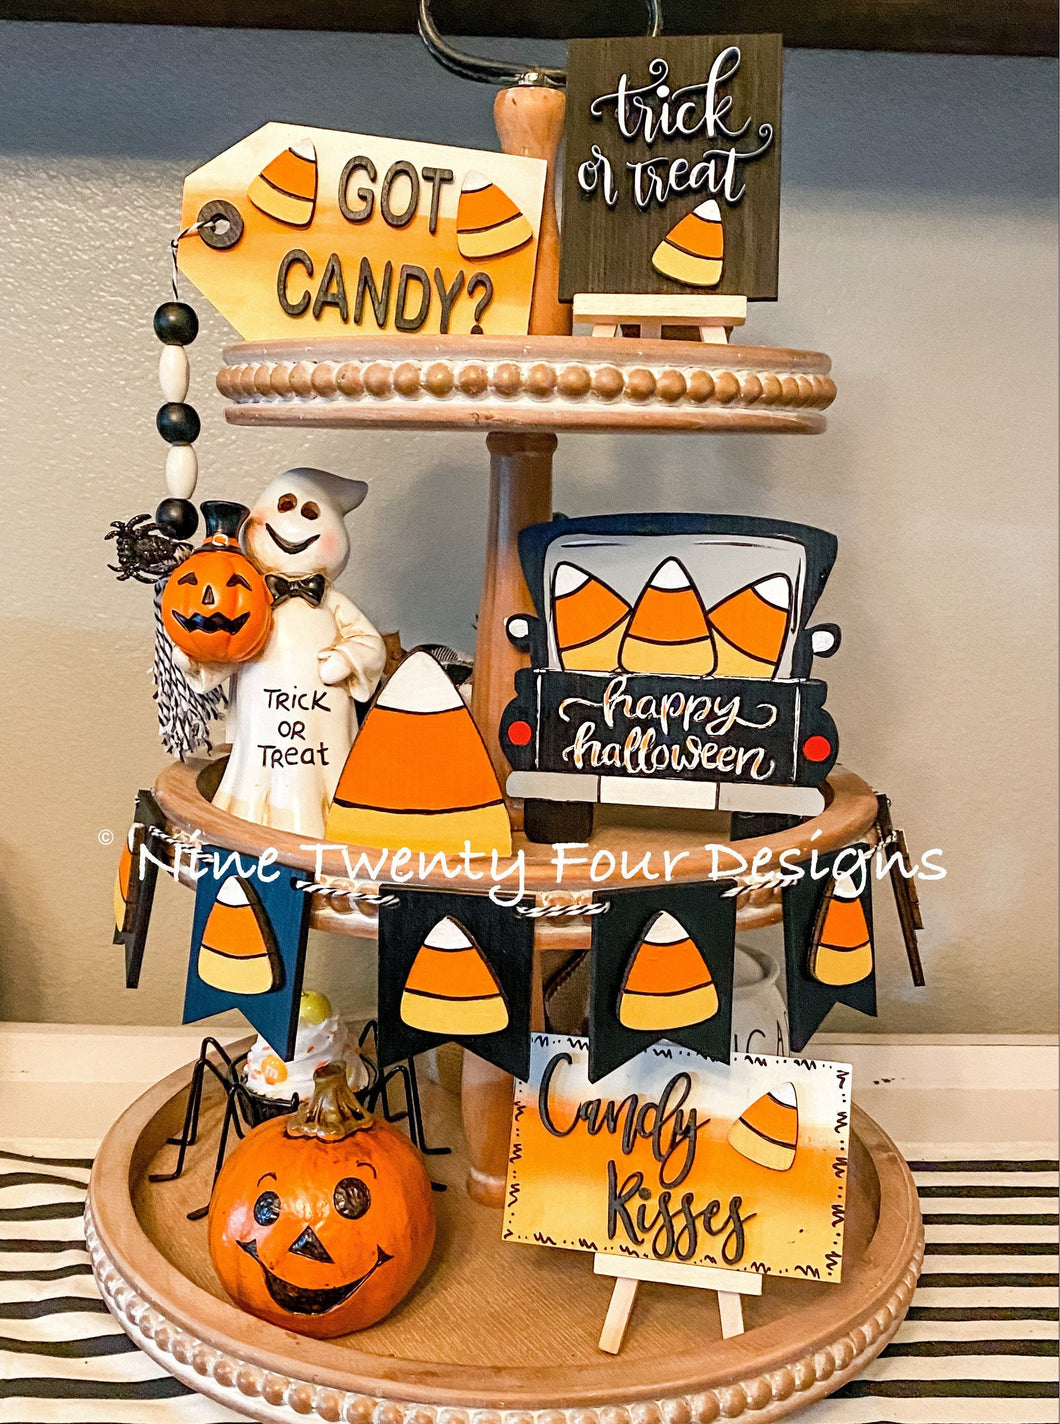 DIY Candy corn tiered tray set. Paint yourself kit